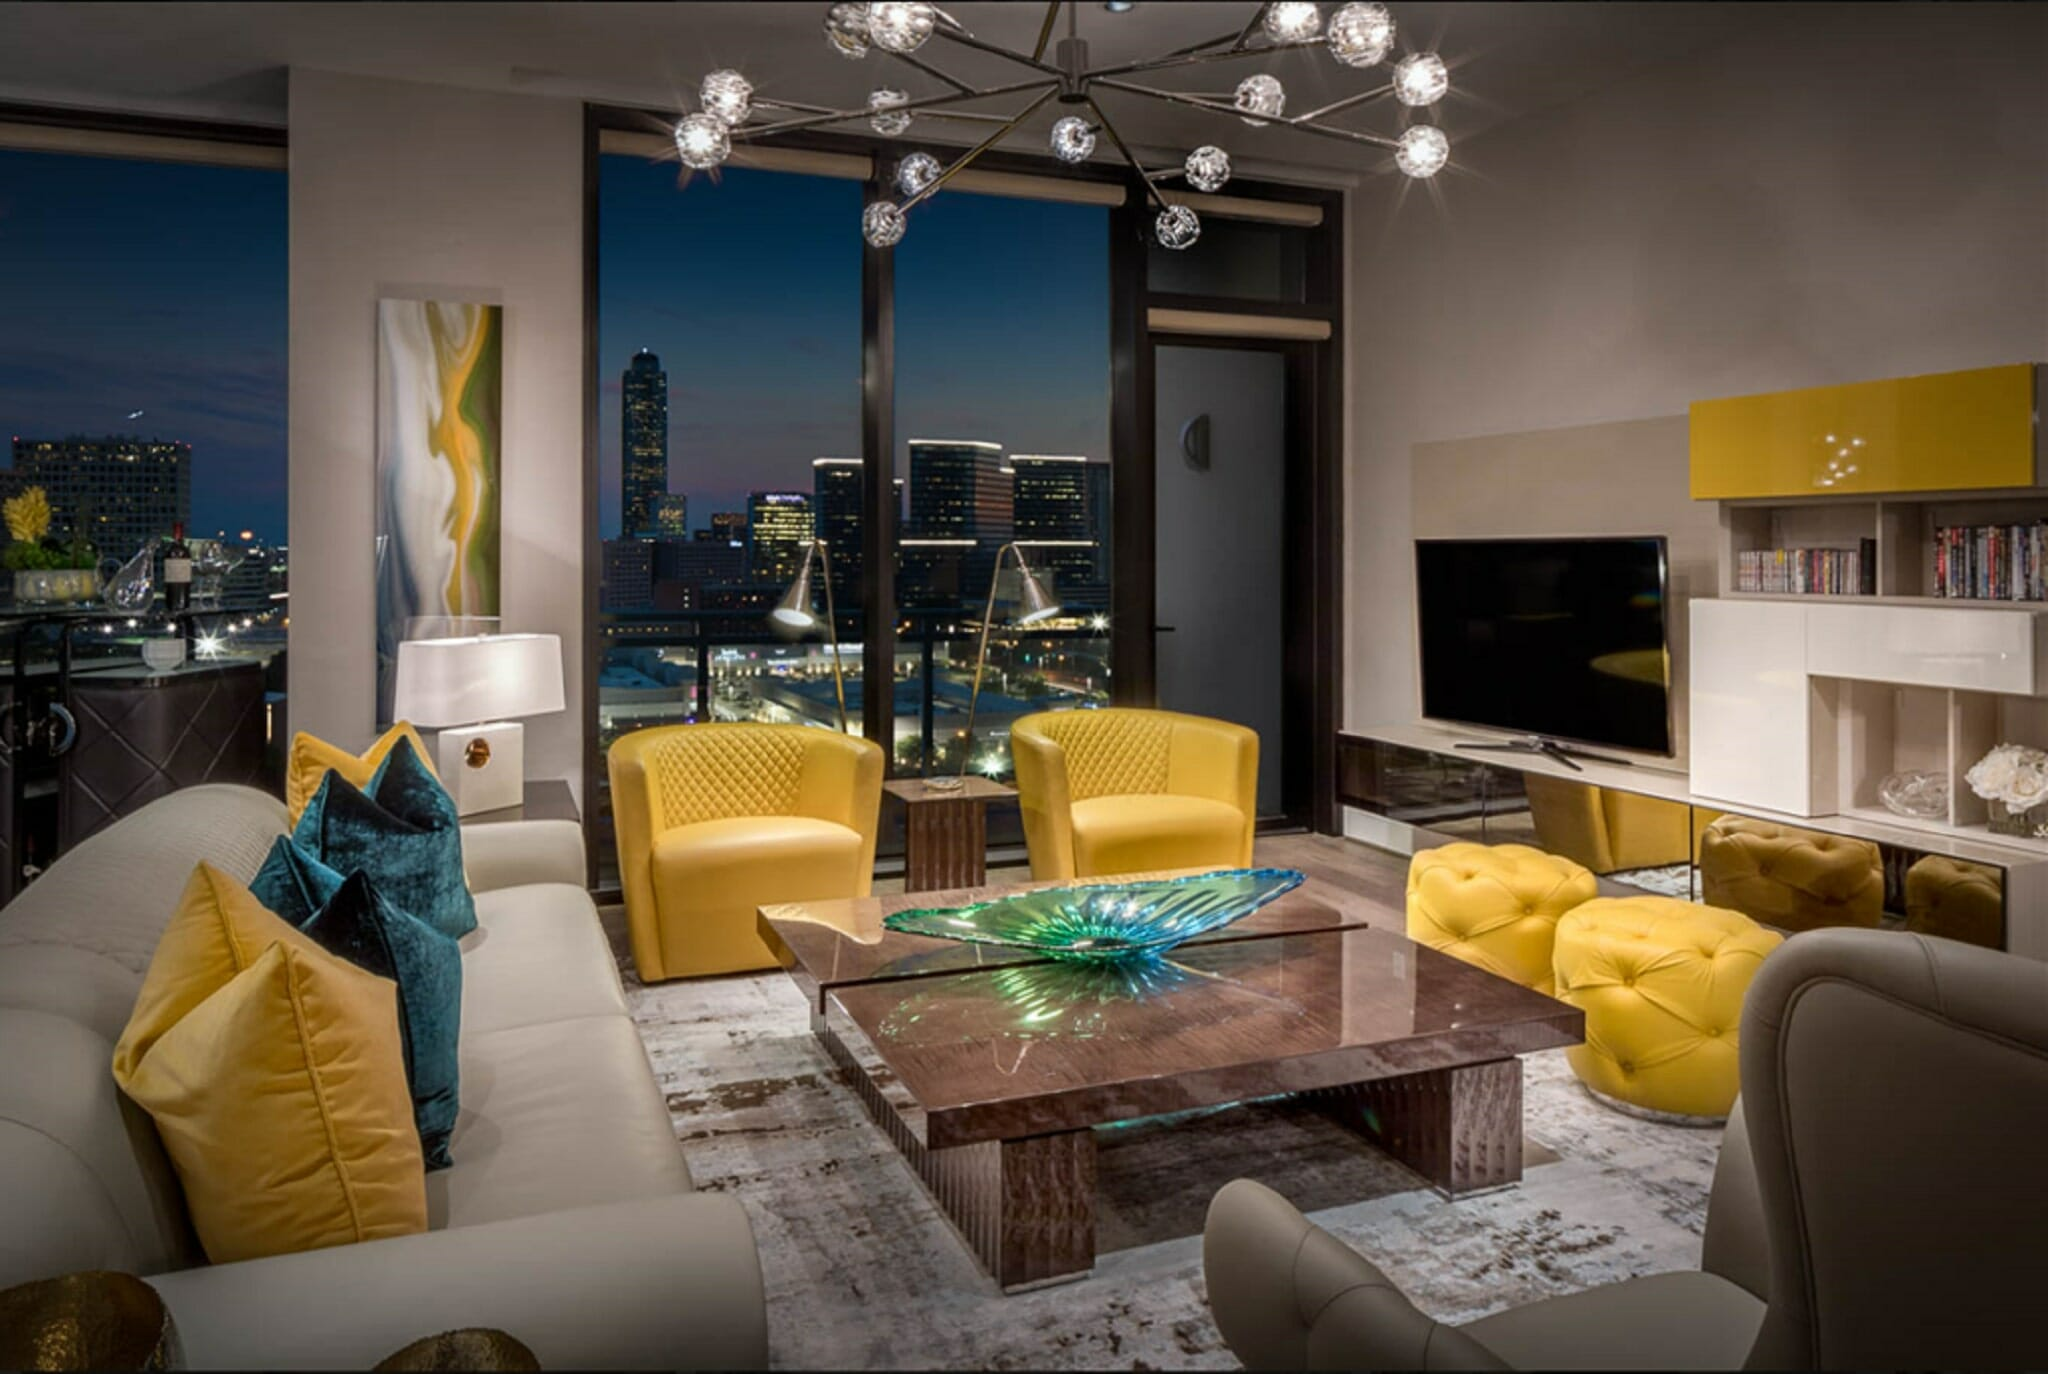 Pantone 2021 color of the year, illuminating yellow as an accent in a contemporary loft